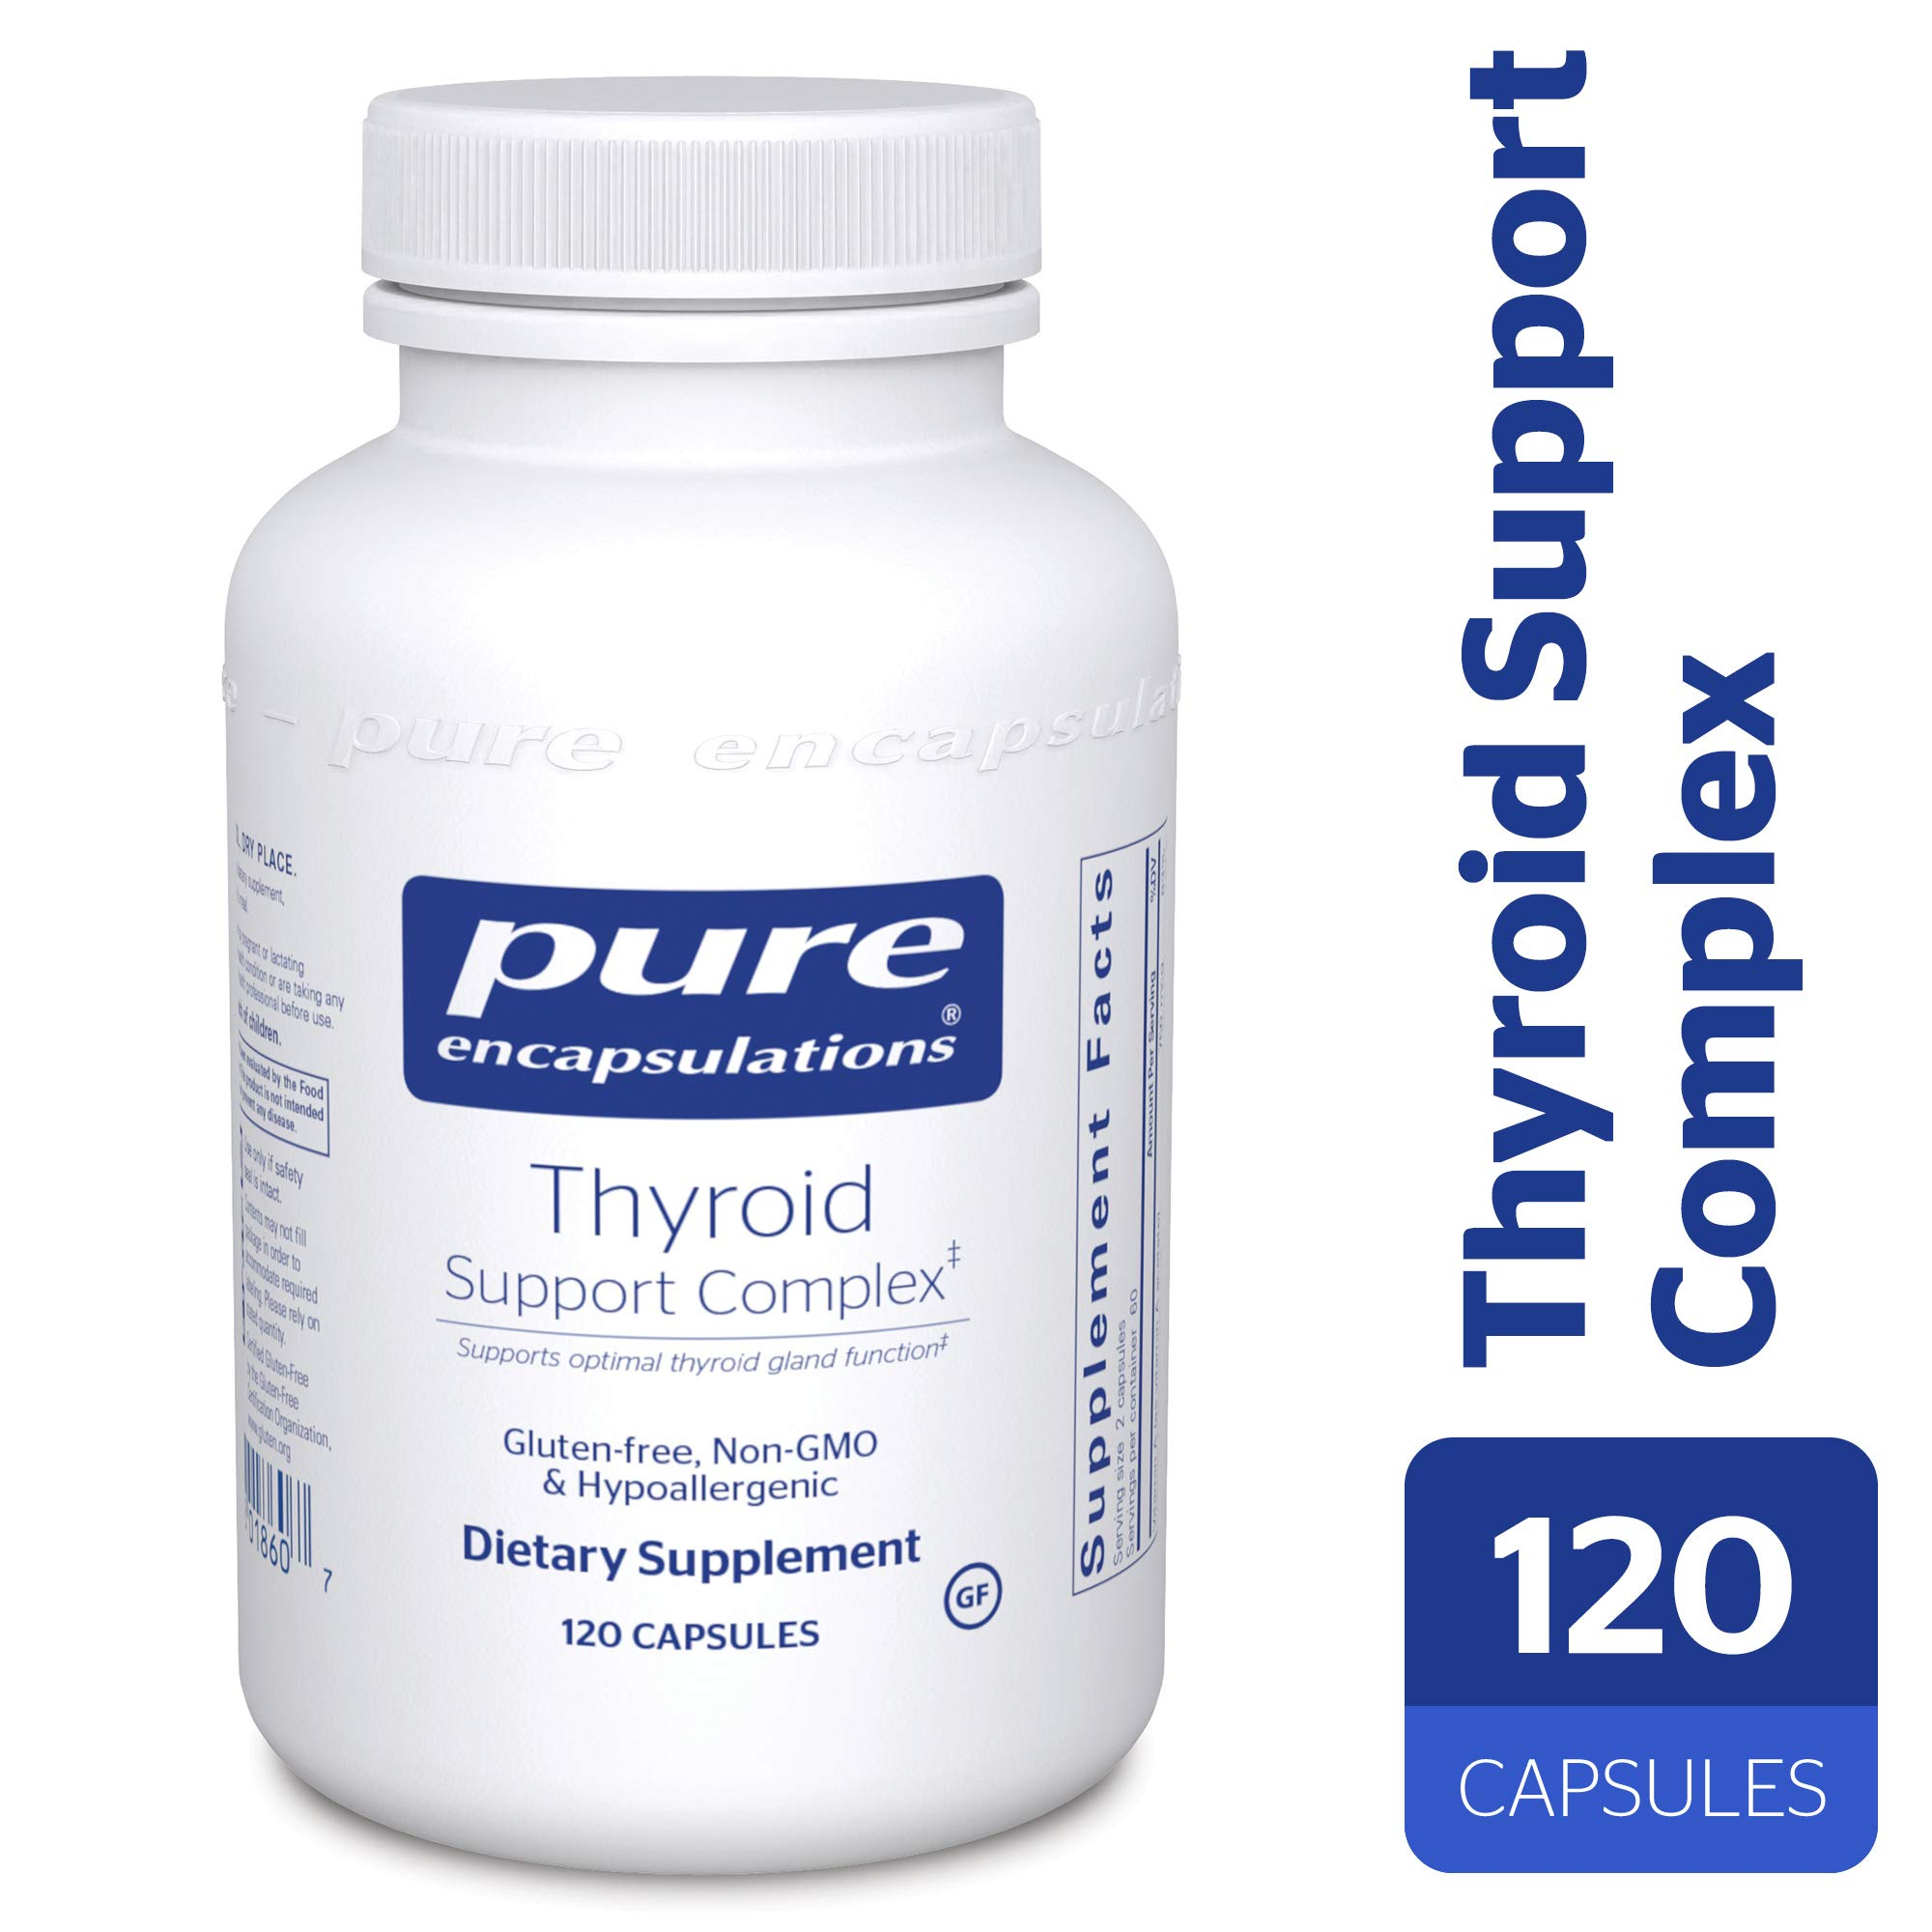 Pure Encapsulations - Thyroid Support Complex - Hypoallergenic Supplement with Herbs and Nutrients for Optimal Thyroid Gland Function* - 120 Capsules by Pure Encapsulations